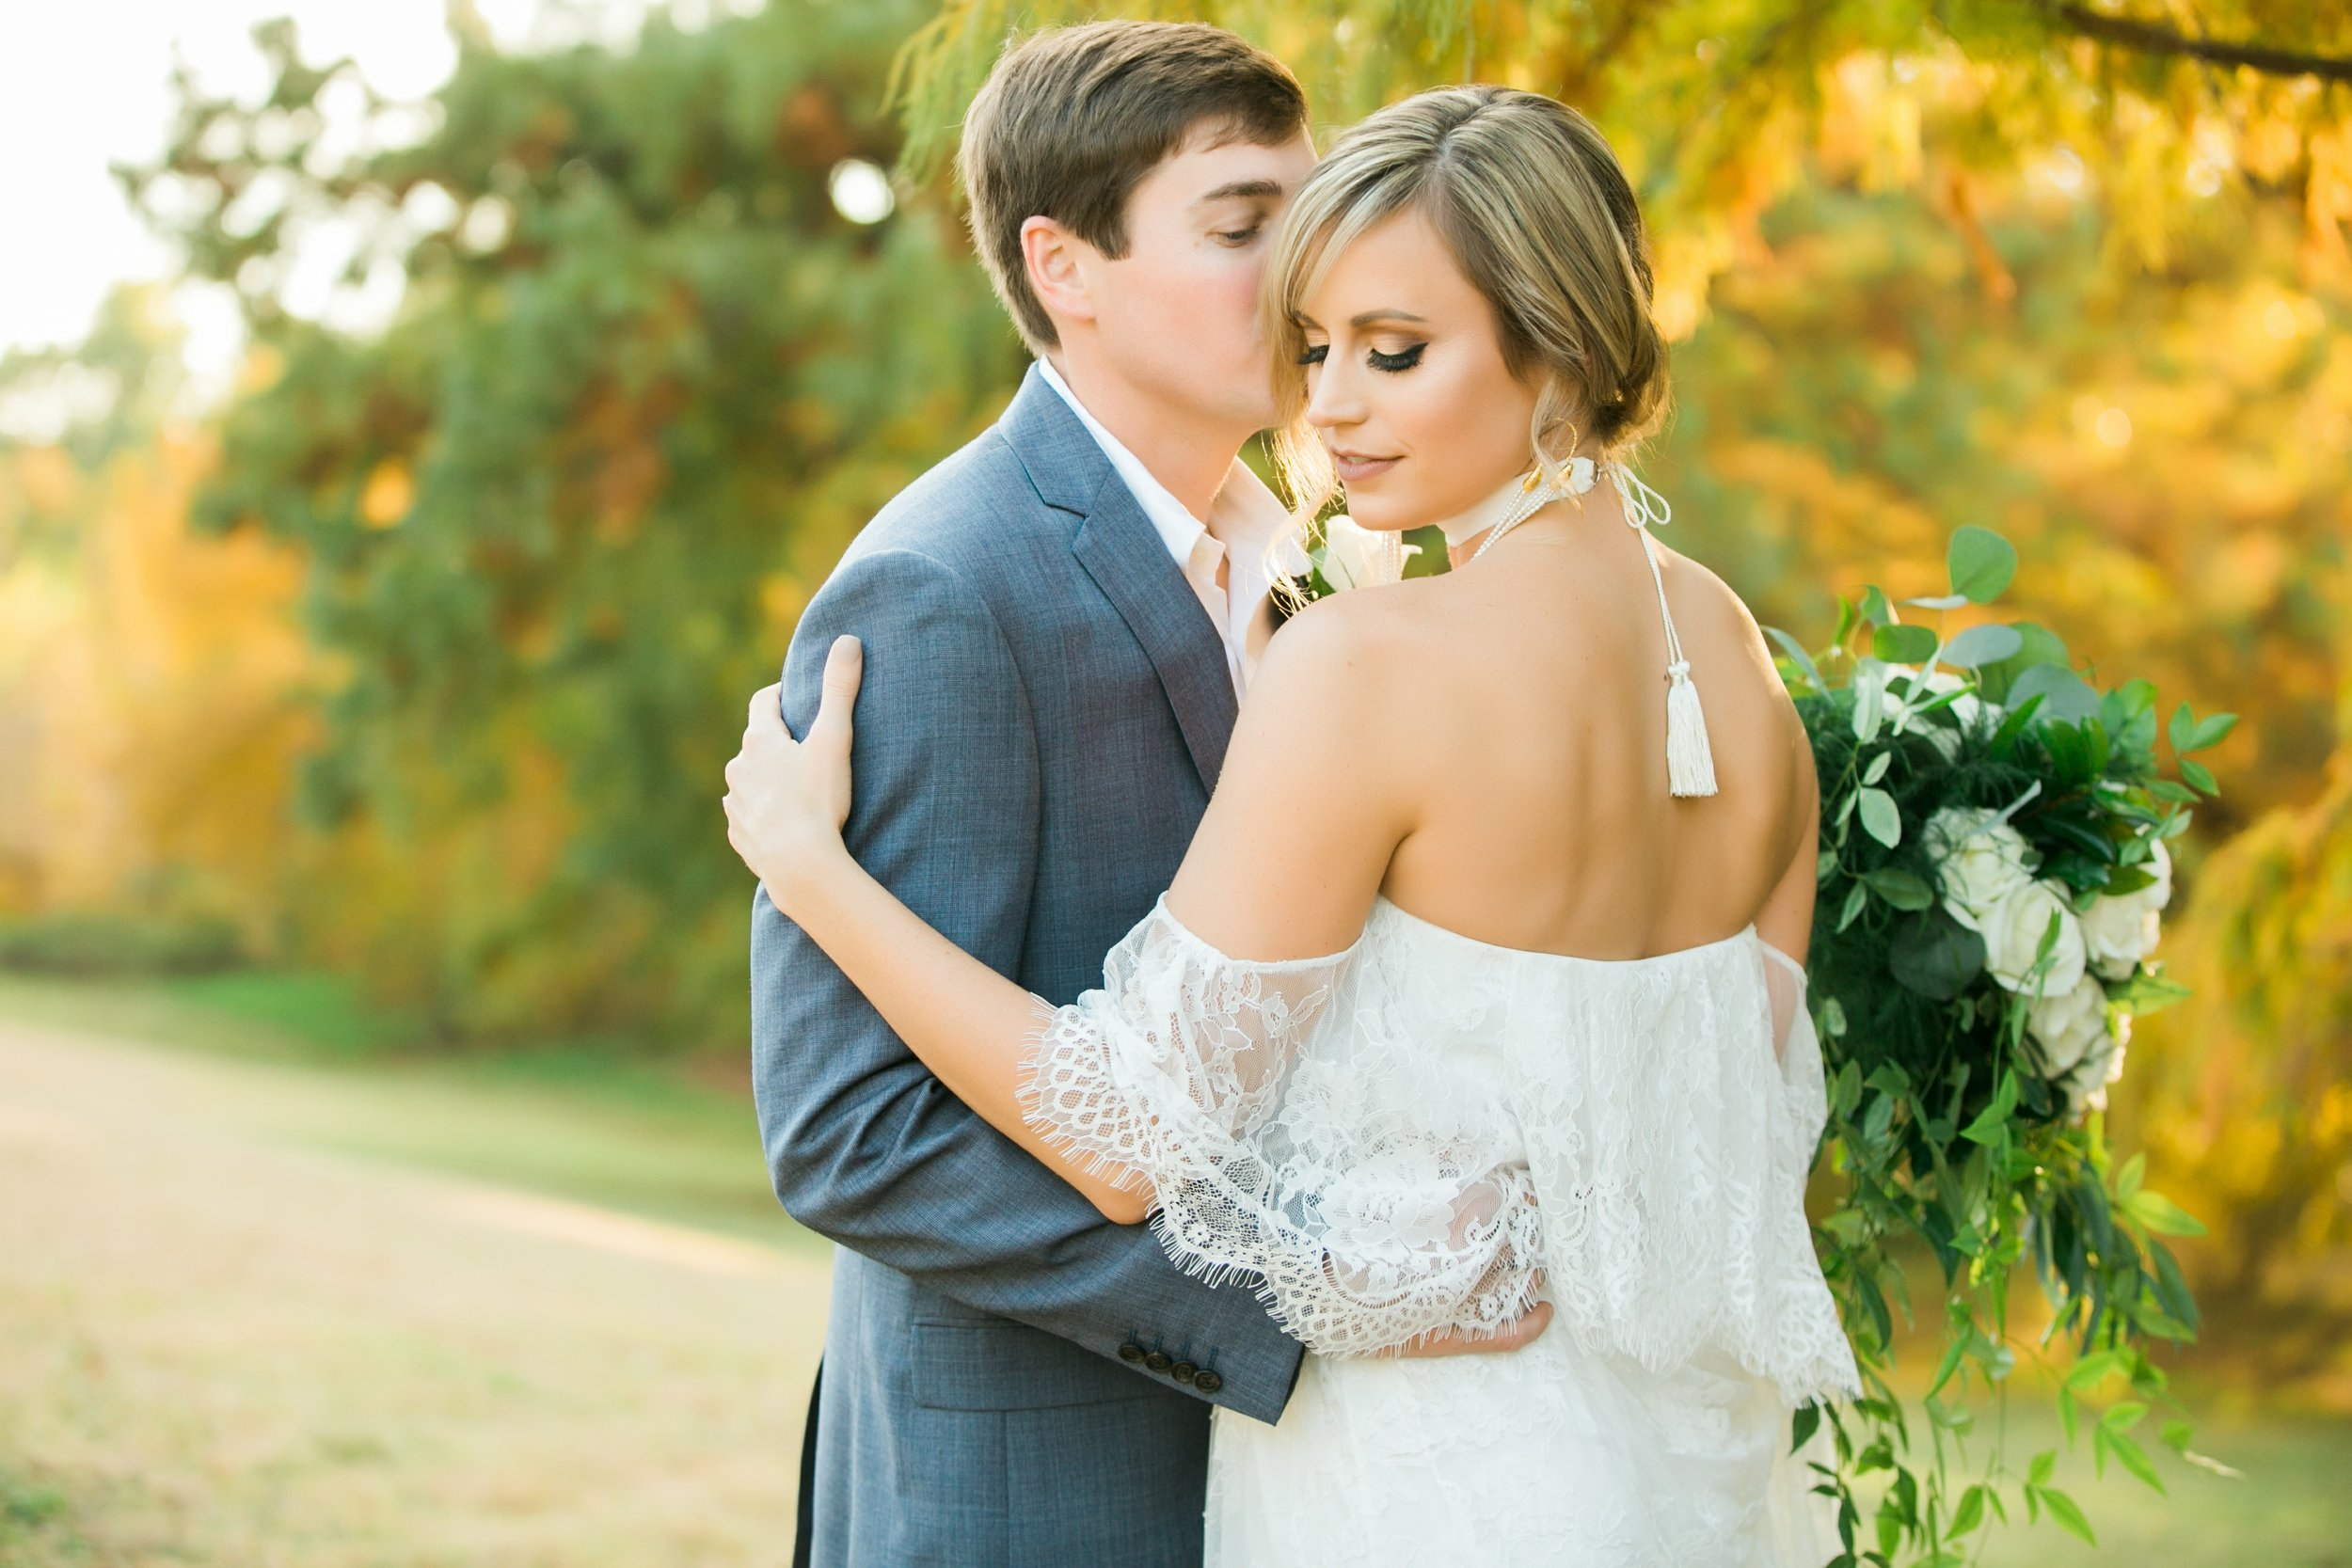 Magan-Landon-Surprise-wedding-at-southern-jeweled-warehouse-wichita-falls-texas-lauren-pinson-033.jpg